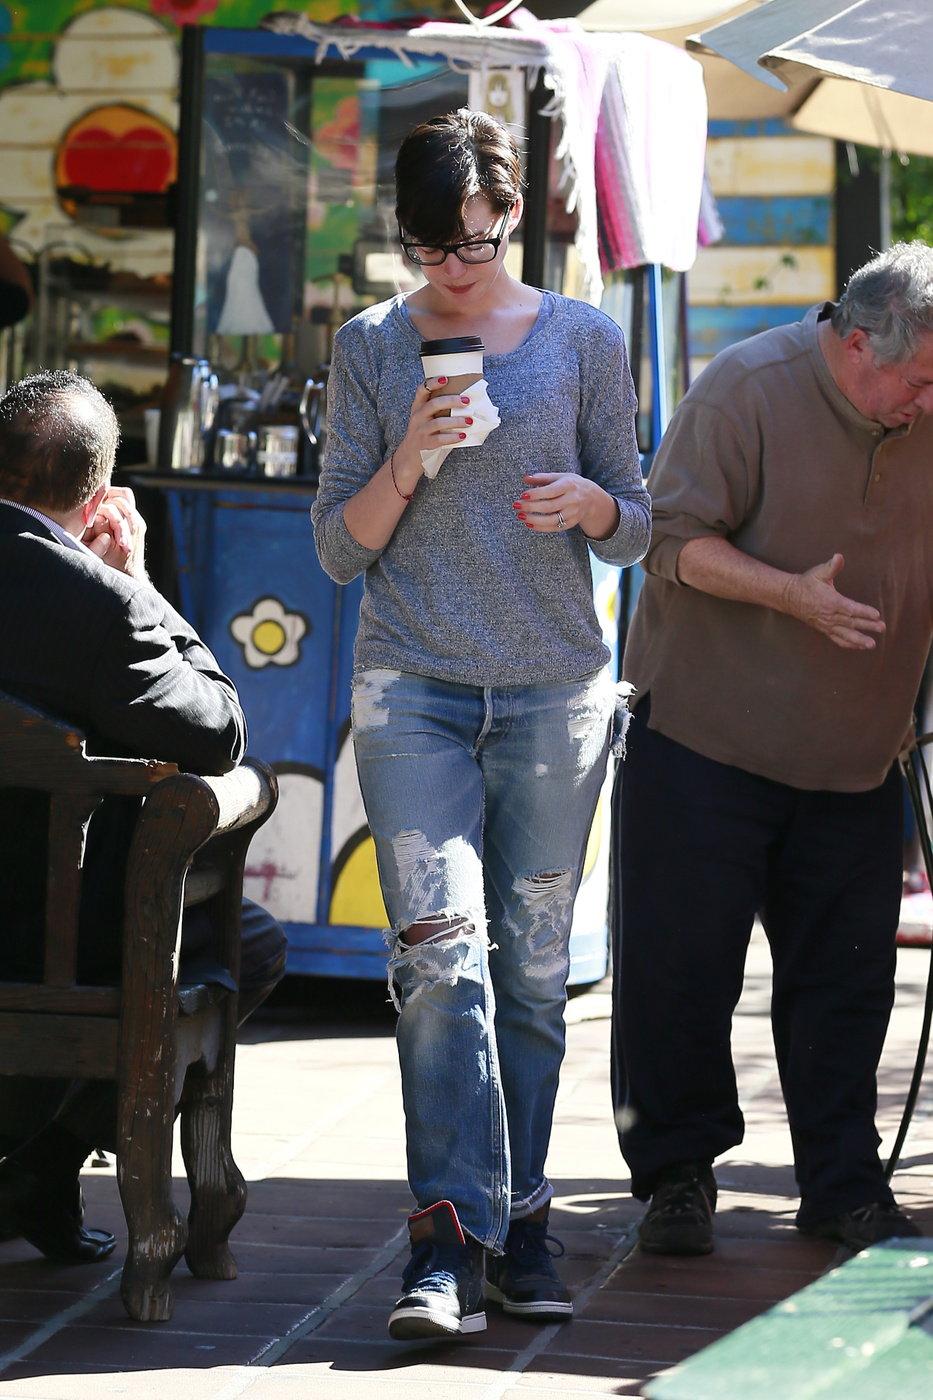 LOS ANGELES, CALIFORNIA - Saturday November 30, 2013. Anne Hathaway grabs some coffee on the go in Los Angeles. Photograph: Bruja, ? PacificCoastNews **FEE MUST BE AGREED PRIOR TO USAGE** **E-TABLET/IPAD & MOBILE PHONE APP PUBLISHING REQUIRES ADDITIONAL FEES** LOS ANGELES OFFICE: +1 310 822 0419 LONDON OFFICE: +44 20 8090 4079